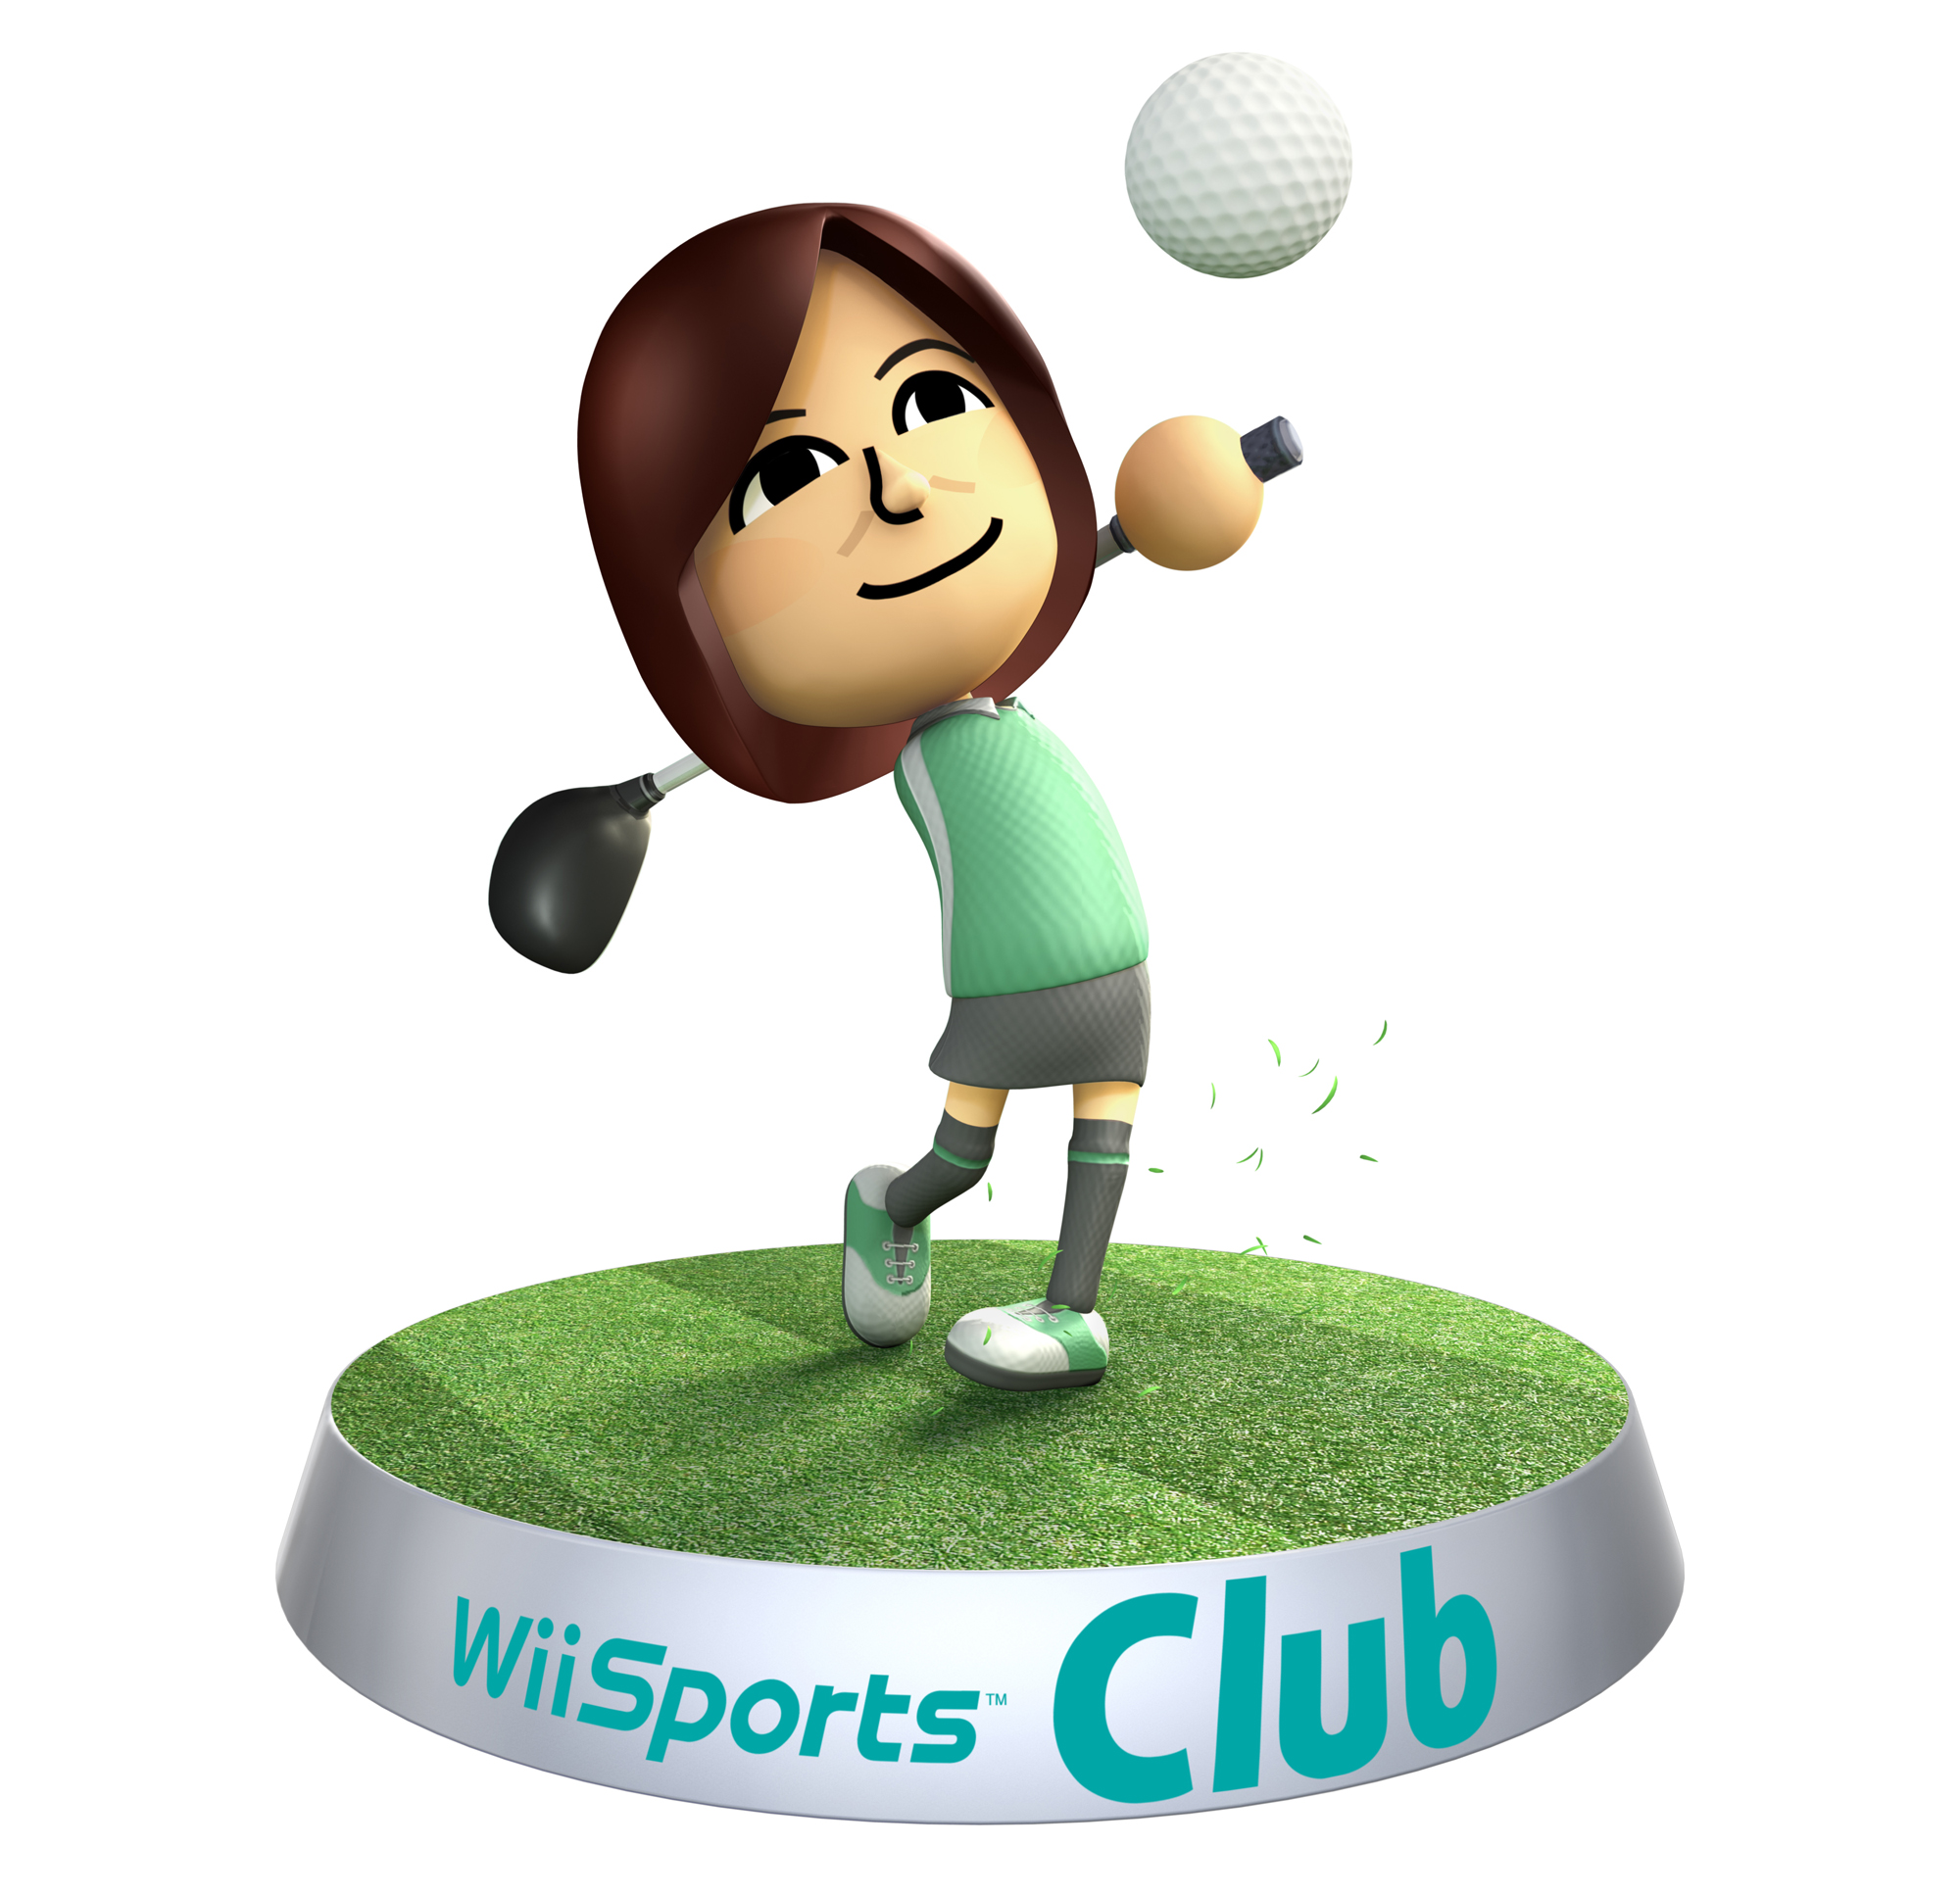 Wii Sports Contents Wii-sports-club-golf-artwork